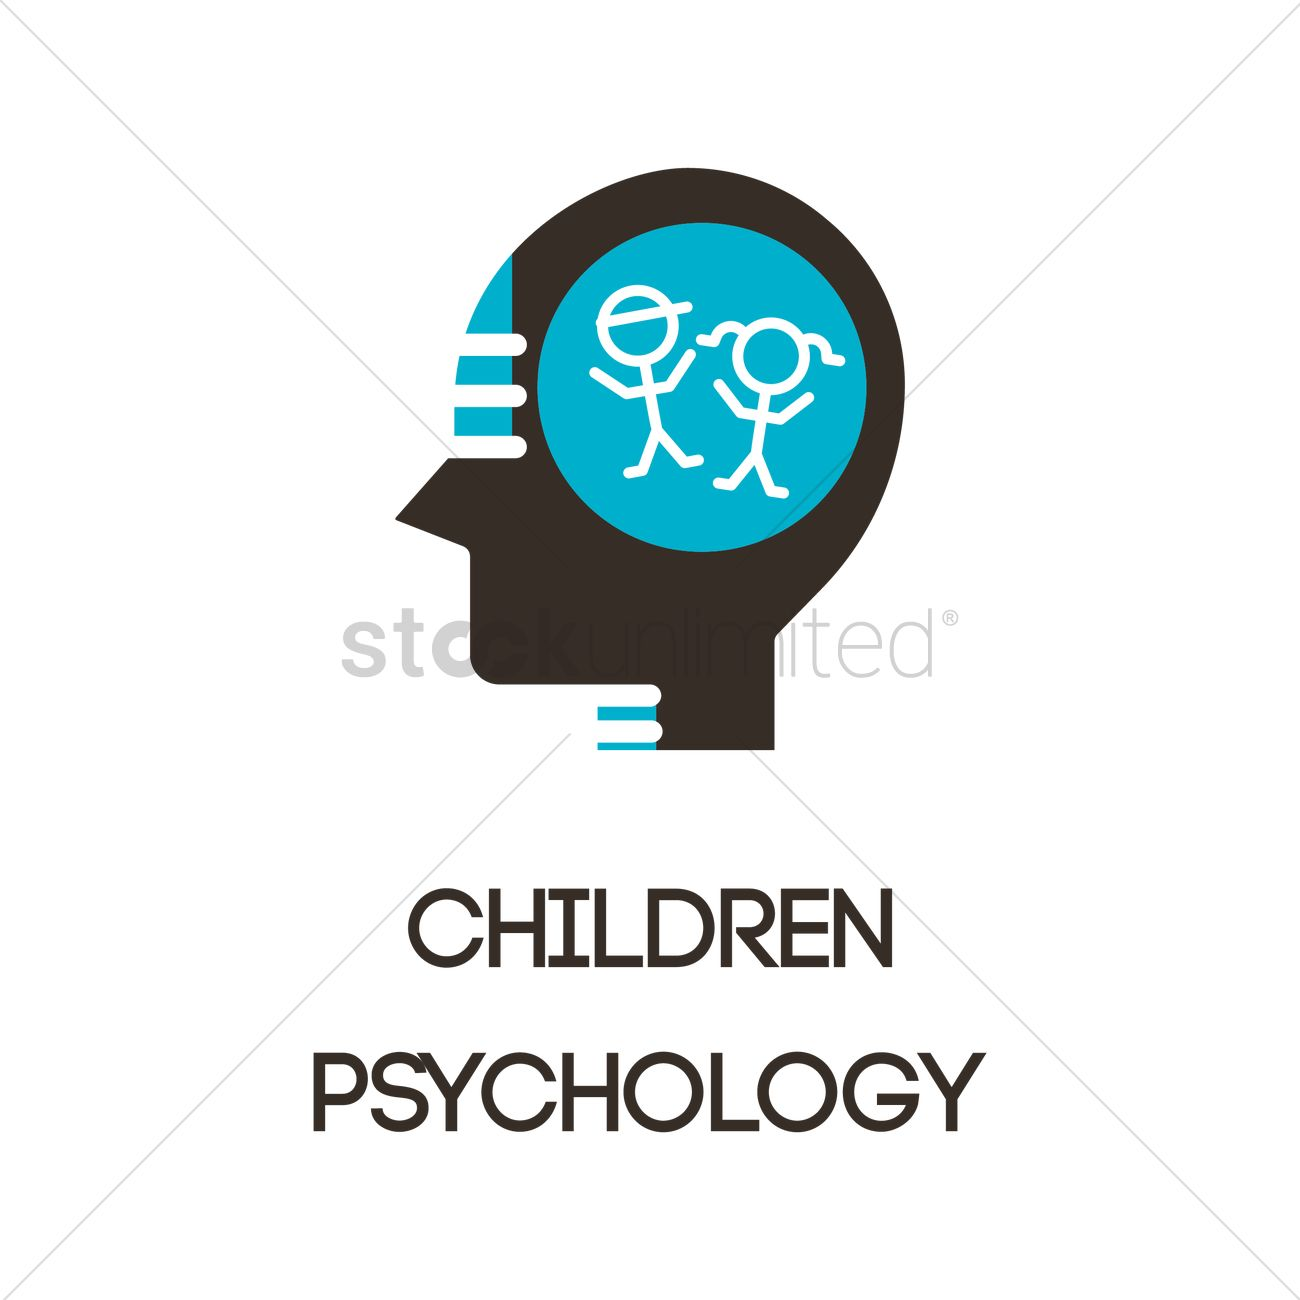 Children Psychology Icon Vector Image 2023204 Stockunlimited